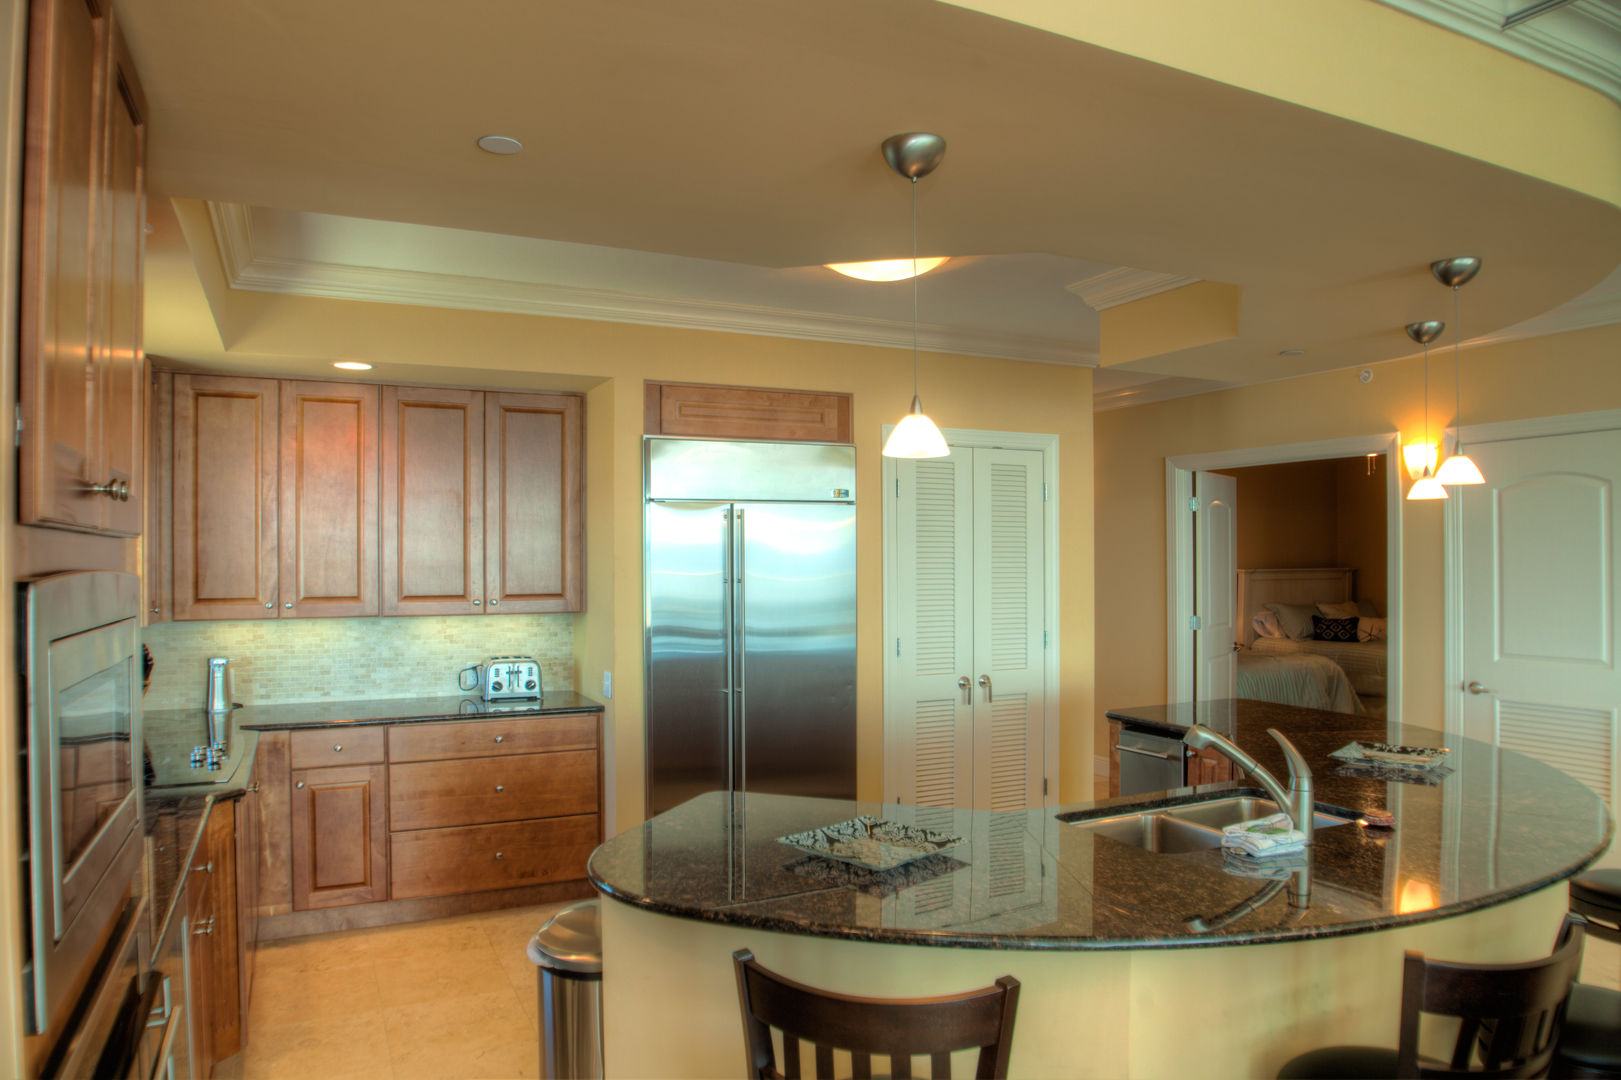 Kitchen with Island, Refrigerator, Microwave, and Pantry Doors.